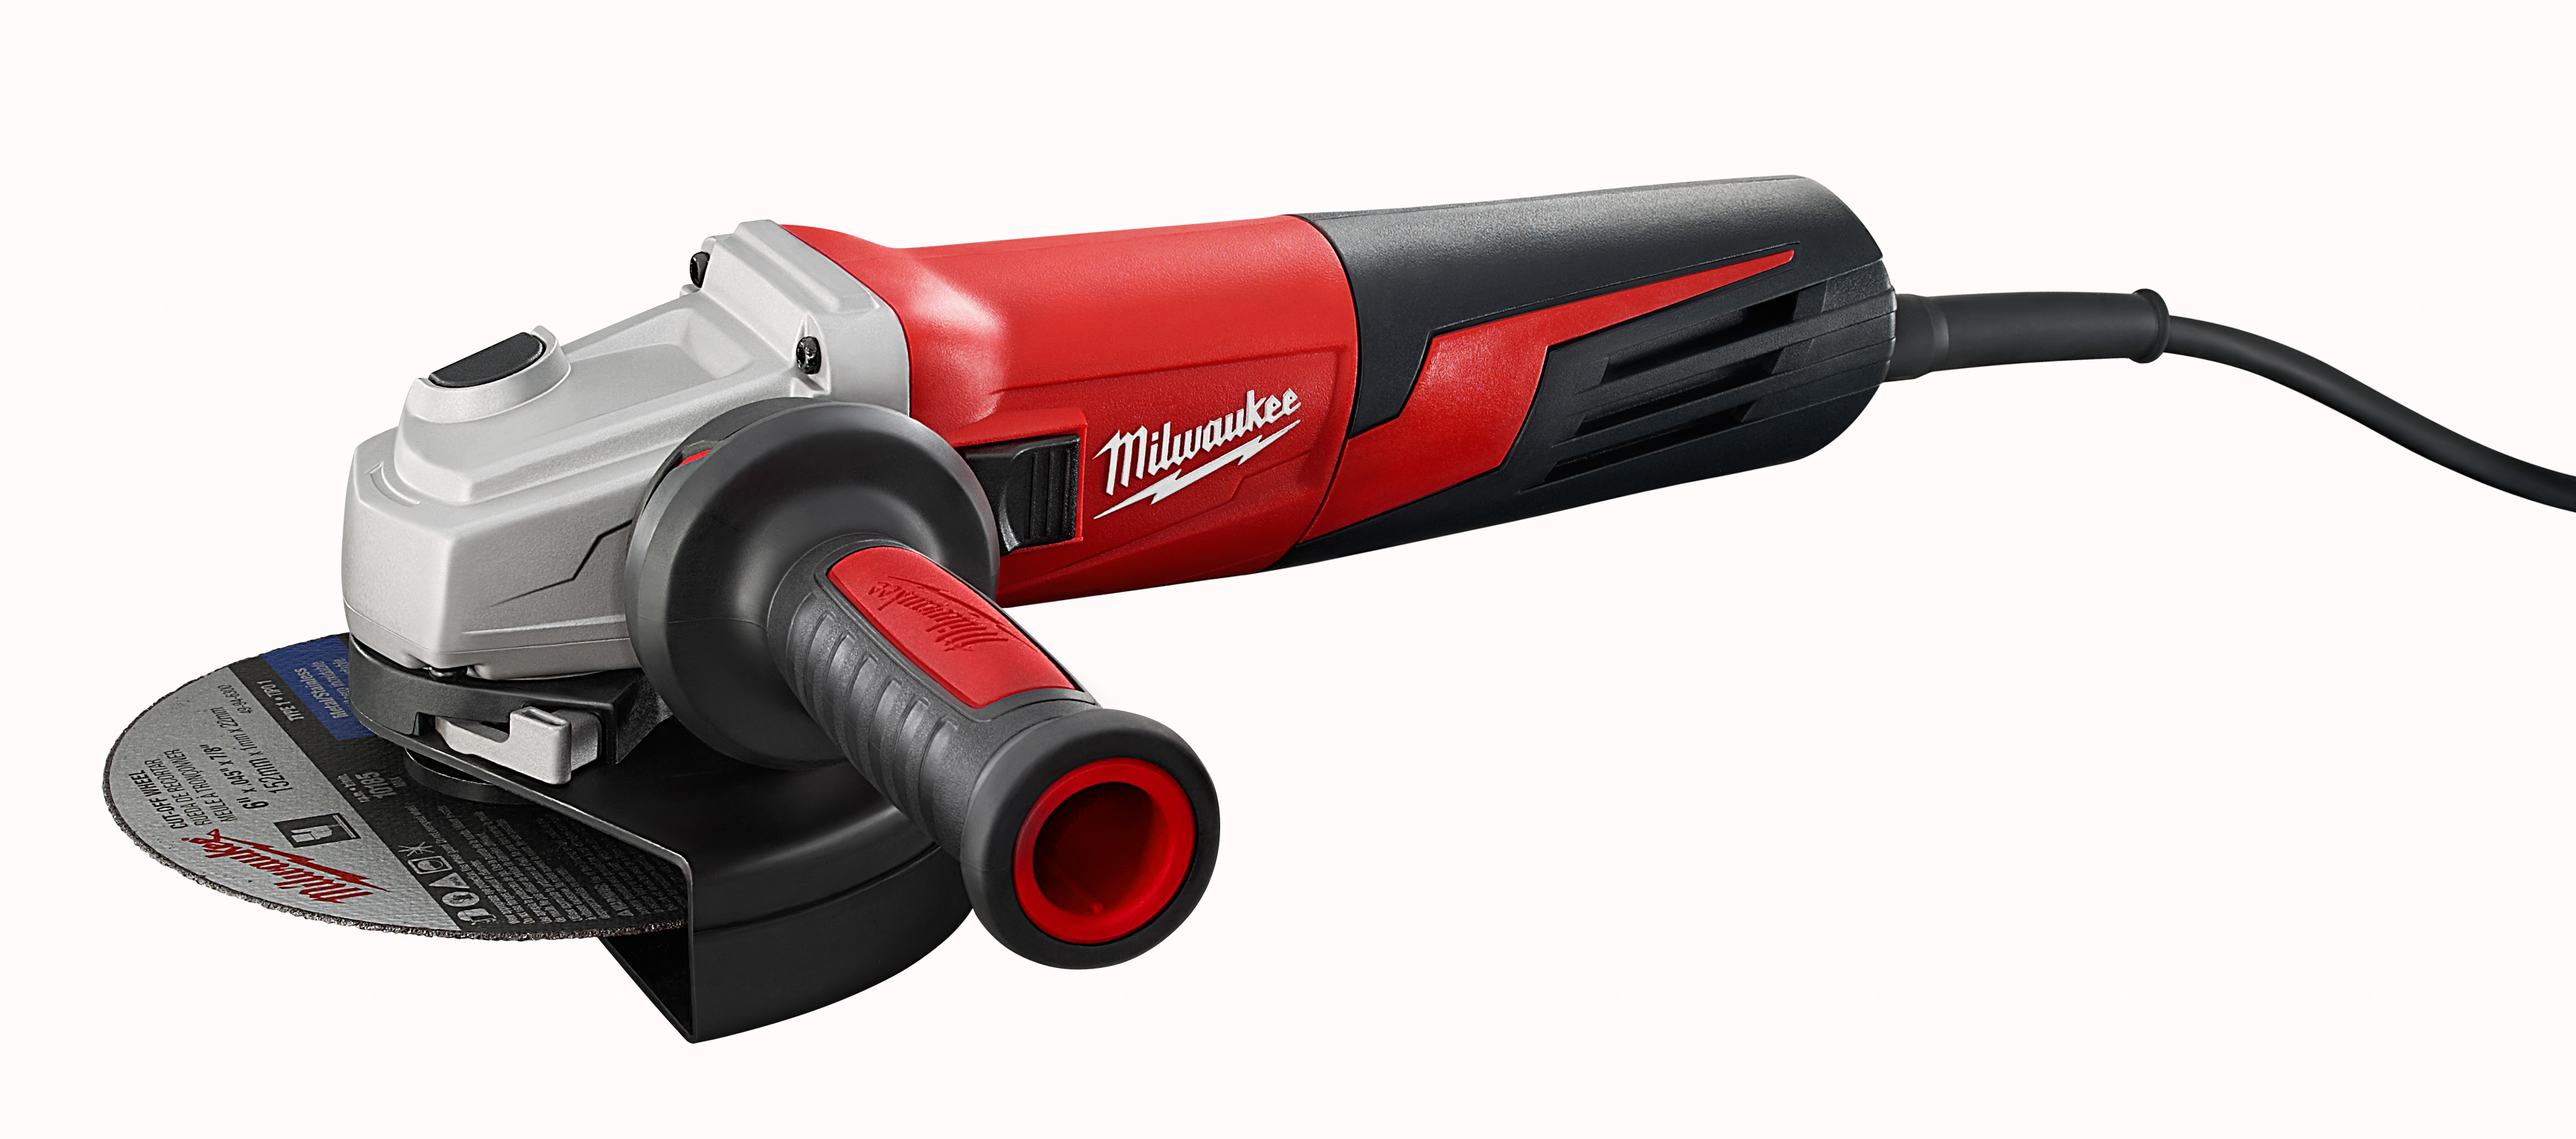 Milwaukee® 6161-33 Double Insulated Small Angle Grinder, 6 in Dia Wheel, 5/8-11 Arbor/Shank, 120 VAC, Red